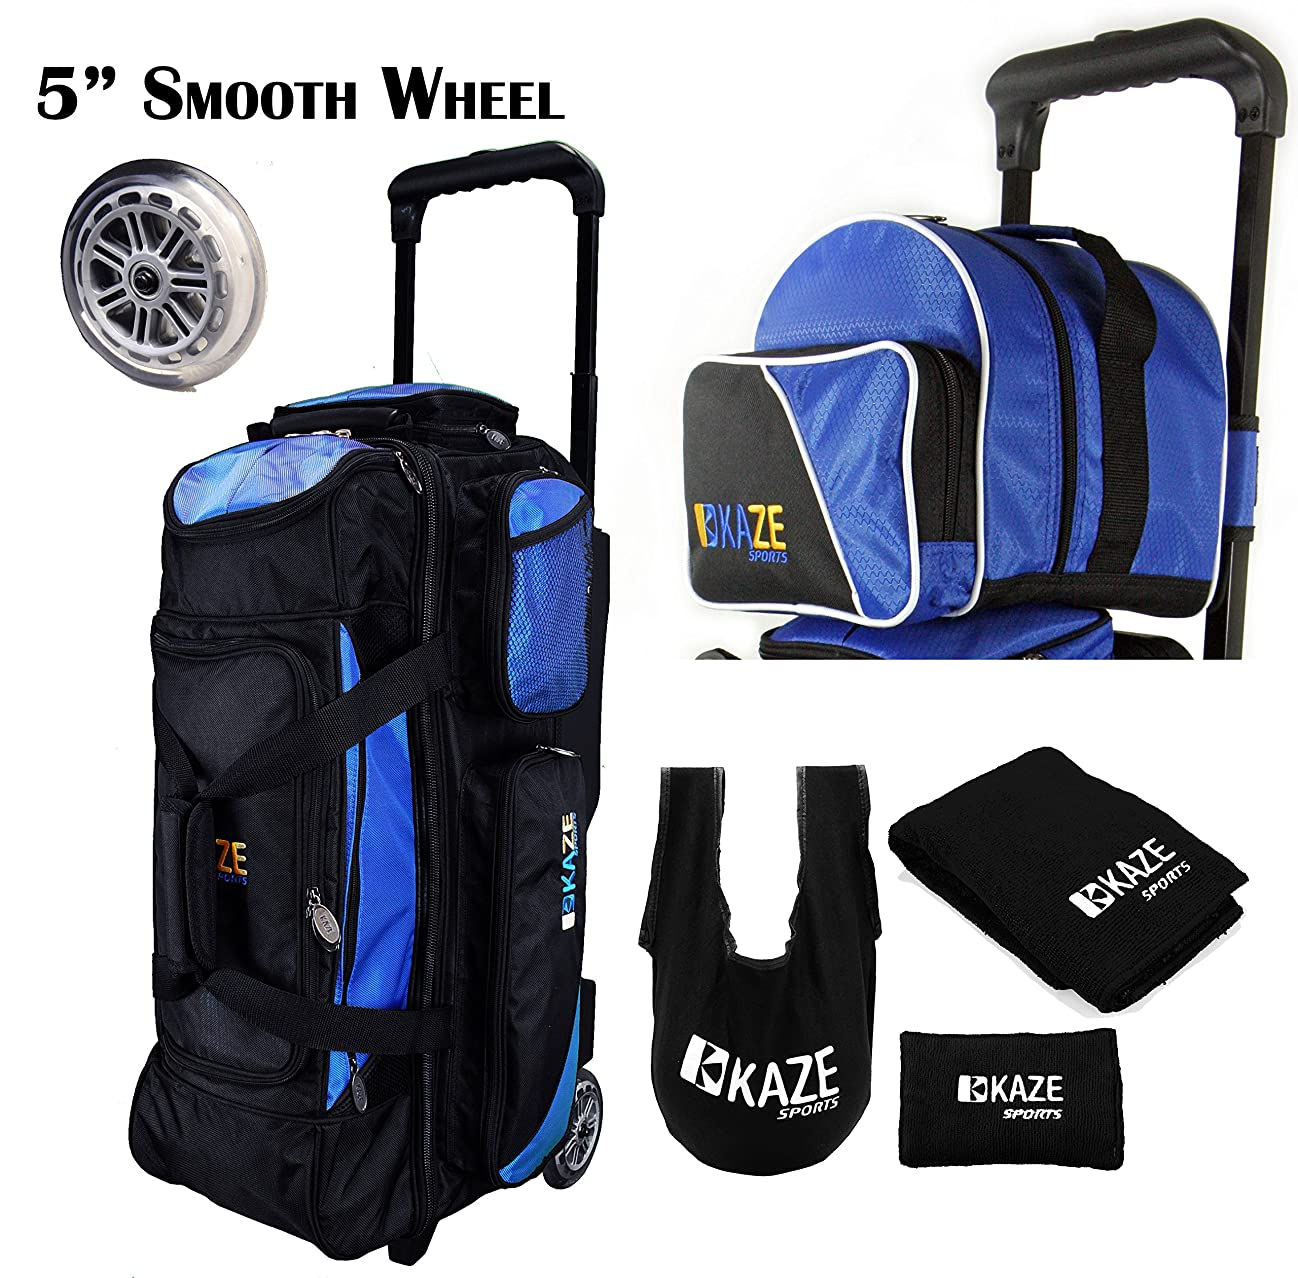 KAZE SPORTS 3 Ball Bowling Roller with Color Match Add On Spare Tote and Accessories Pack